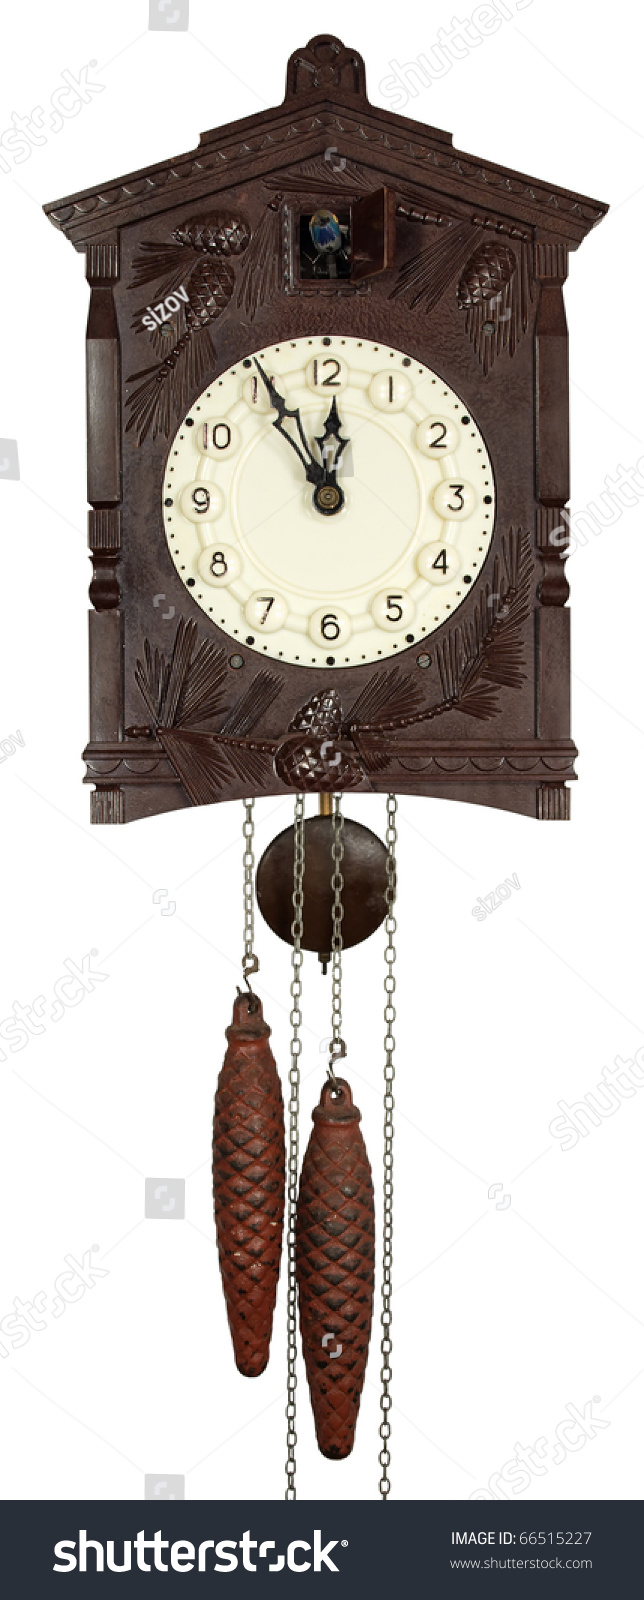 Wall clock with a cuckoo a pendulum and weights stock photo 66515227 shutterstock - Cuckoo pendulum wall clock ...